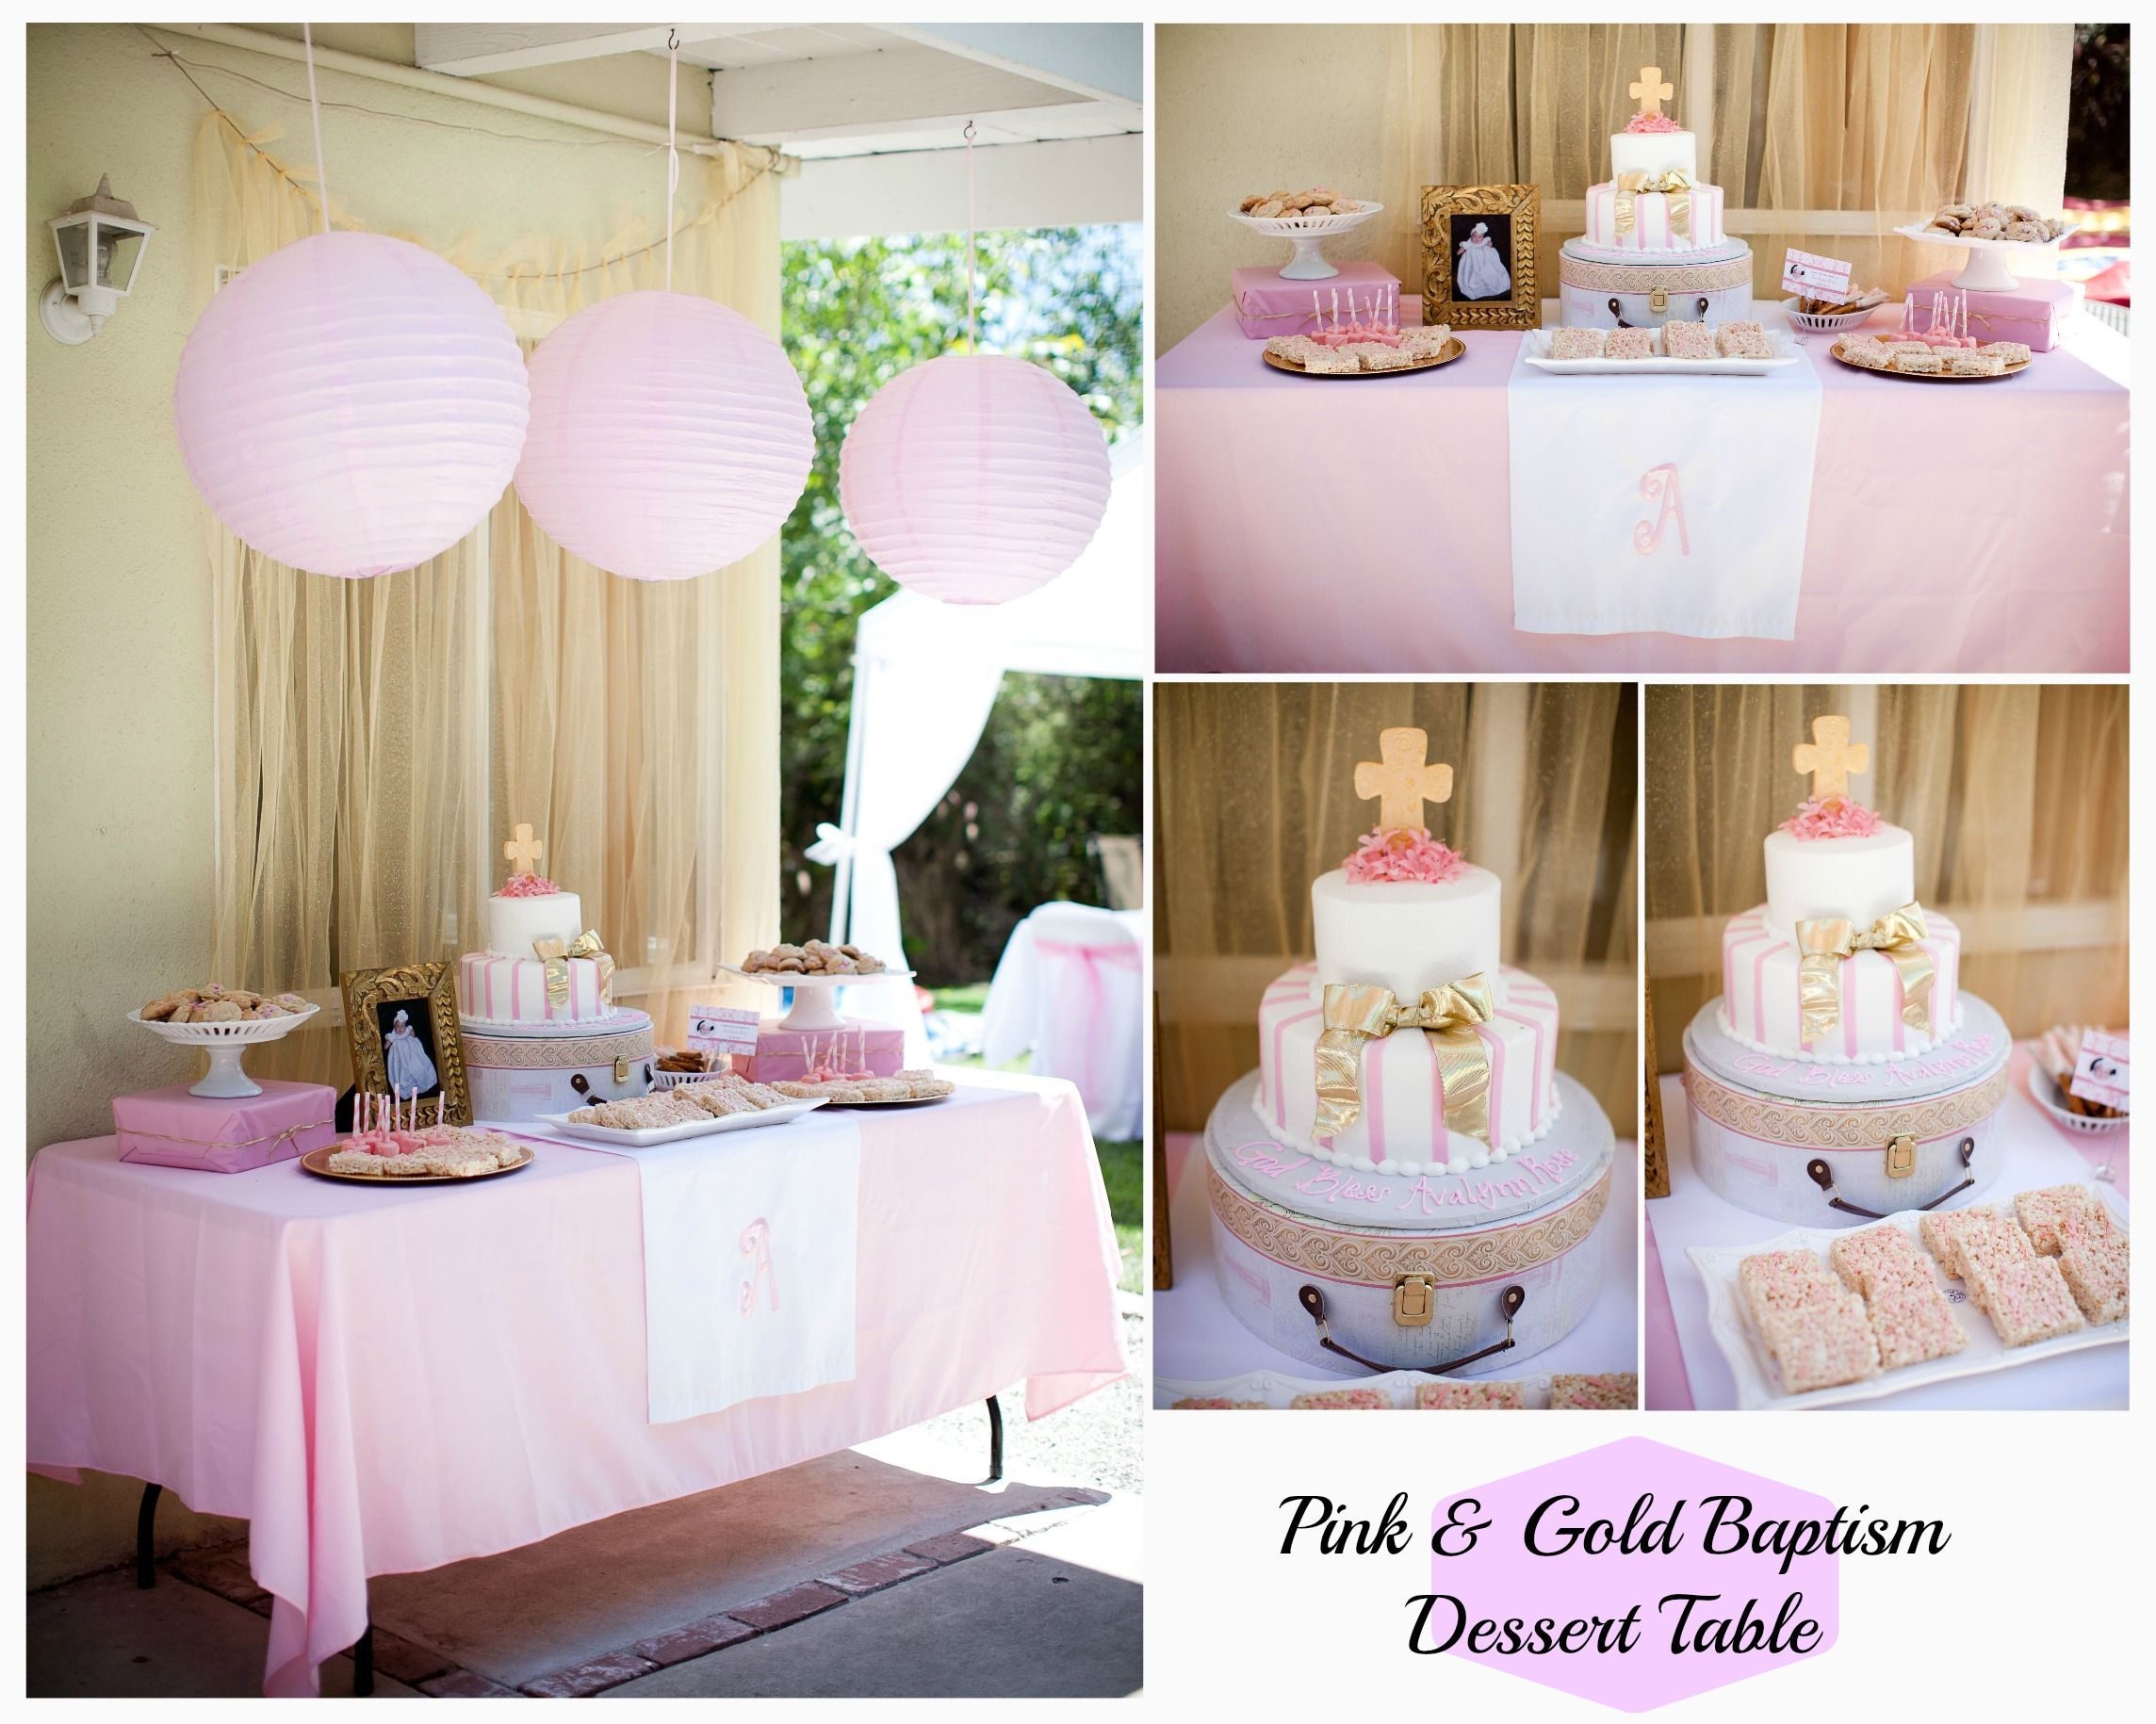 How To Creat A Simple But Classy Pink Gold Baptism Dessert Table